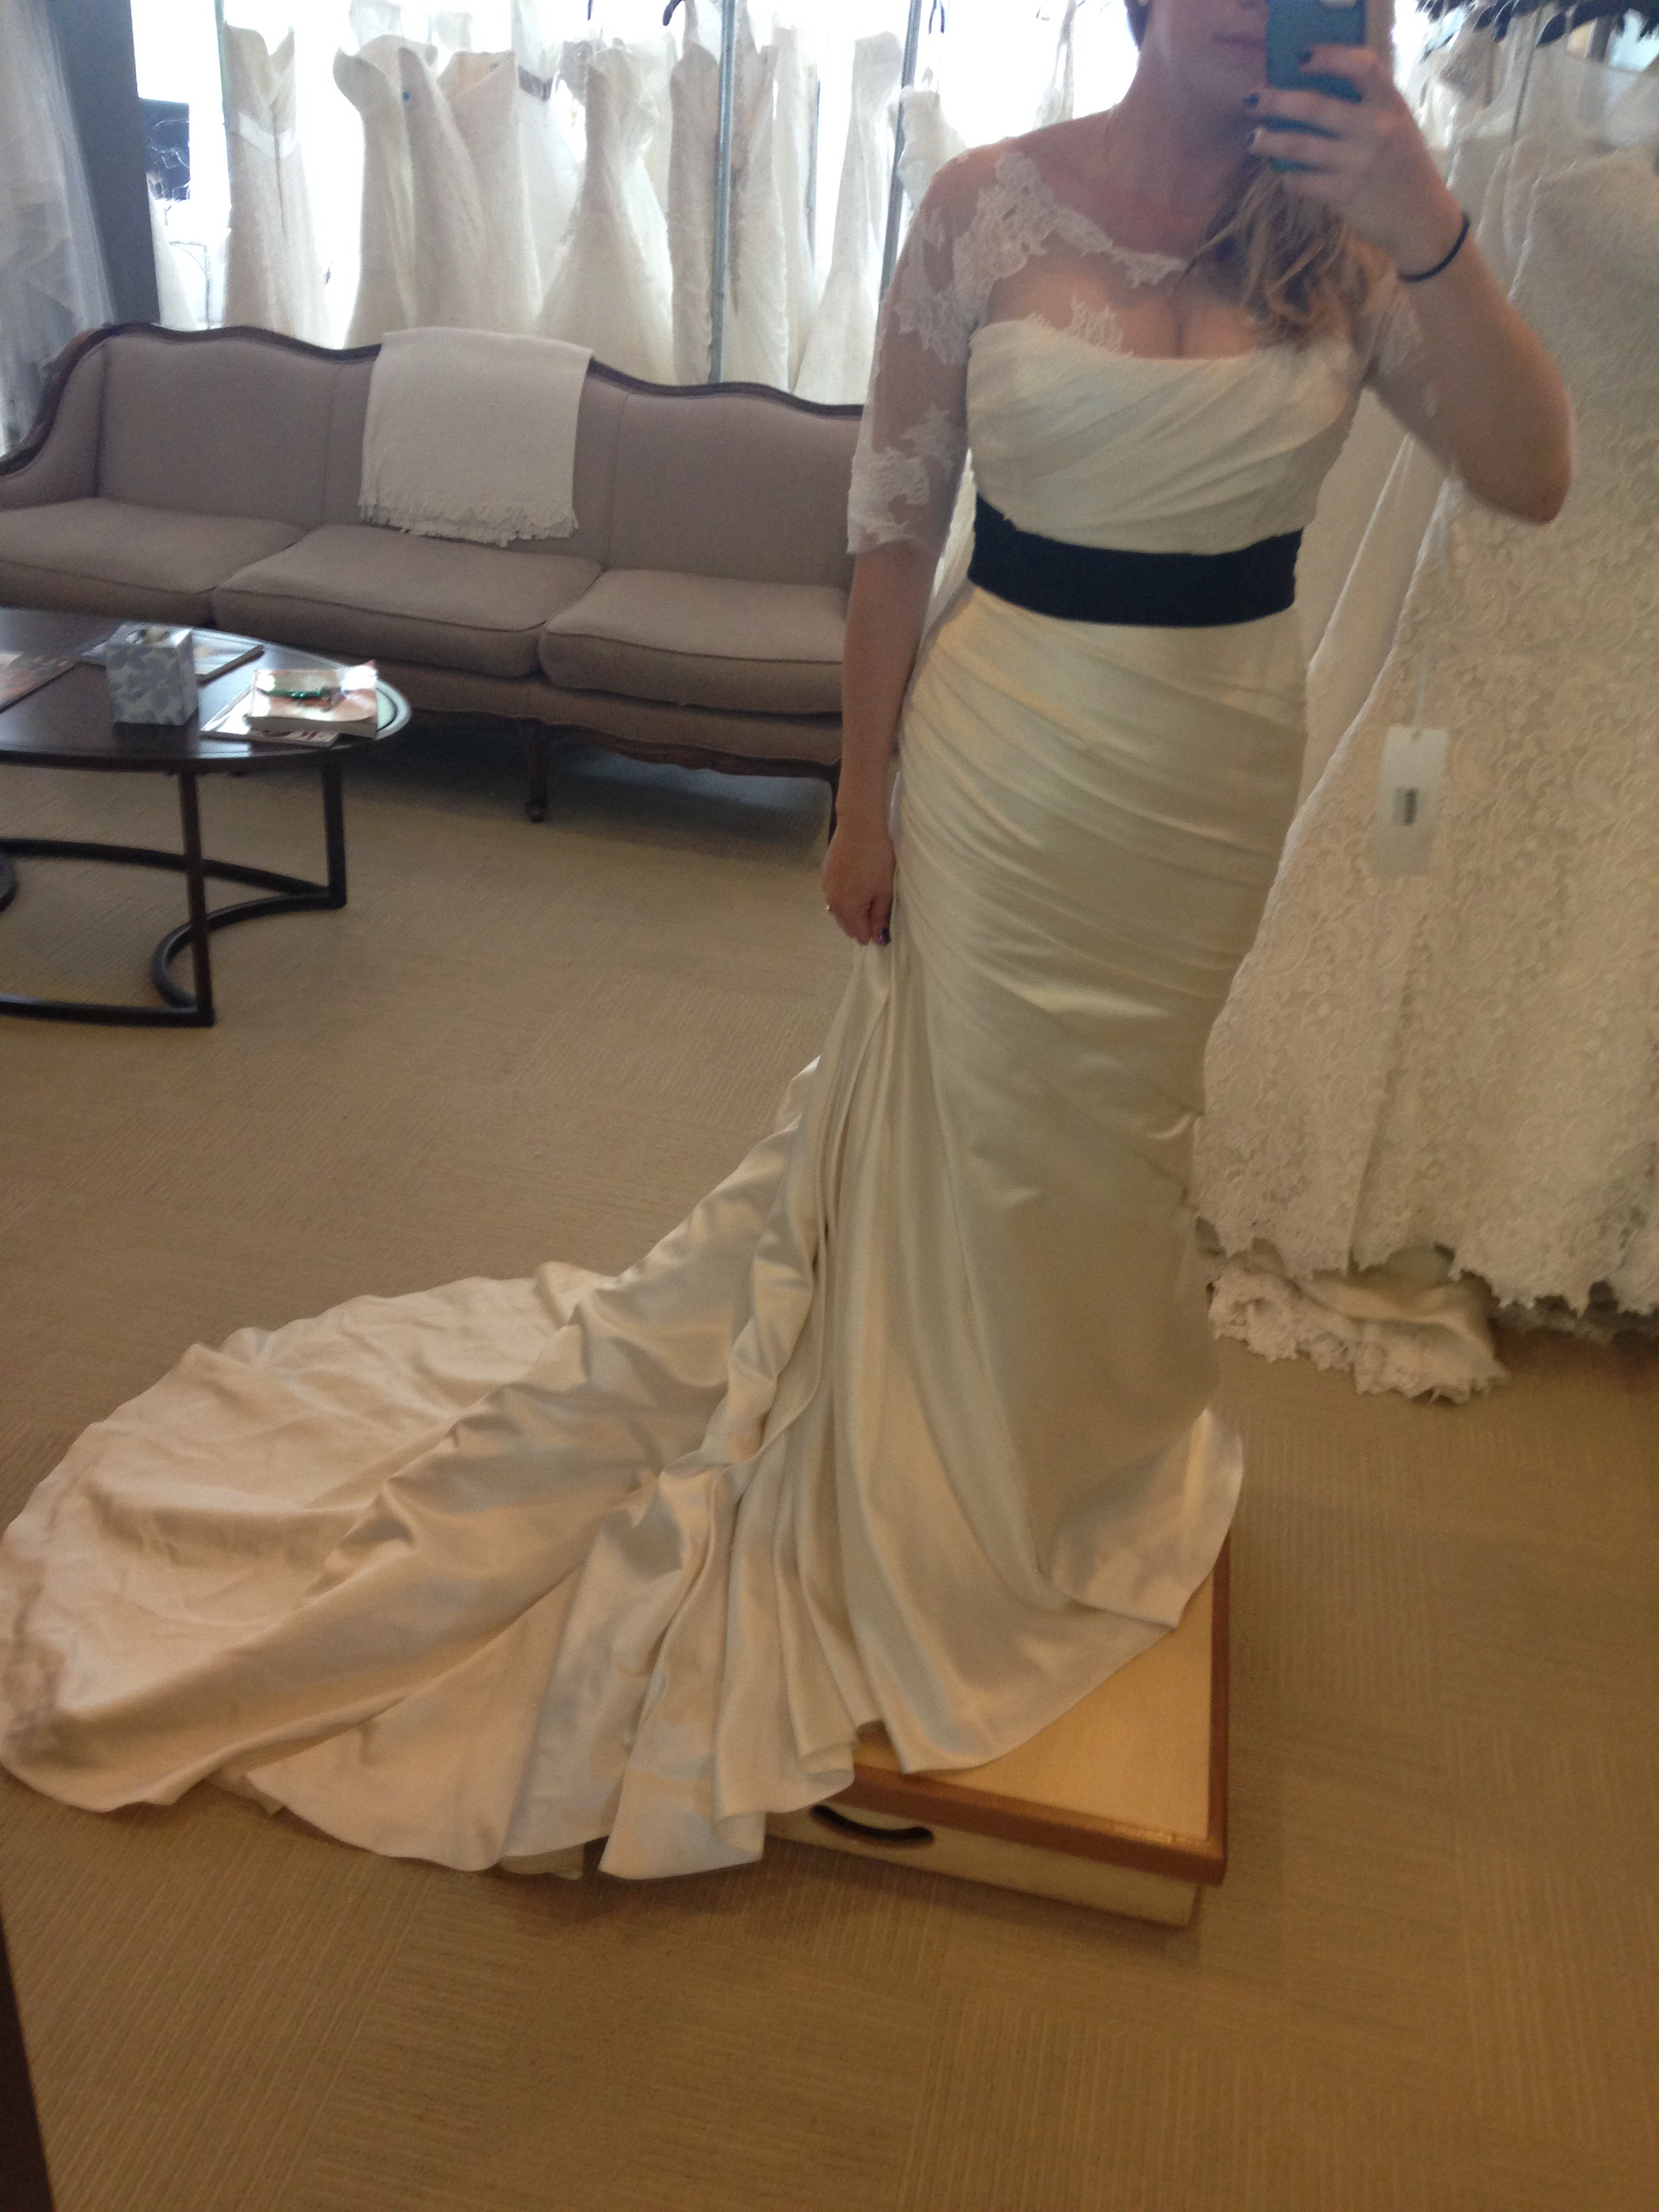 8bd4be75f4699 Trying on my dress not knowing I was a few weeks pregnant.